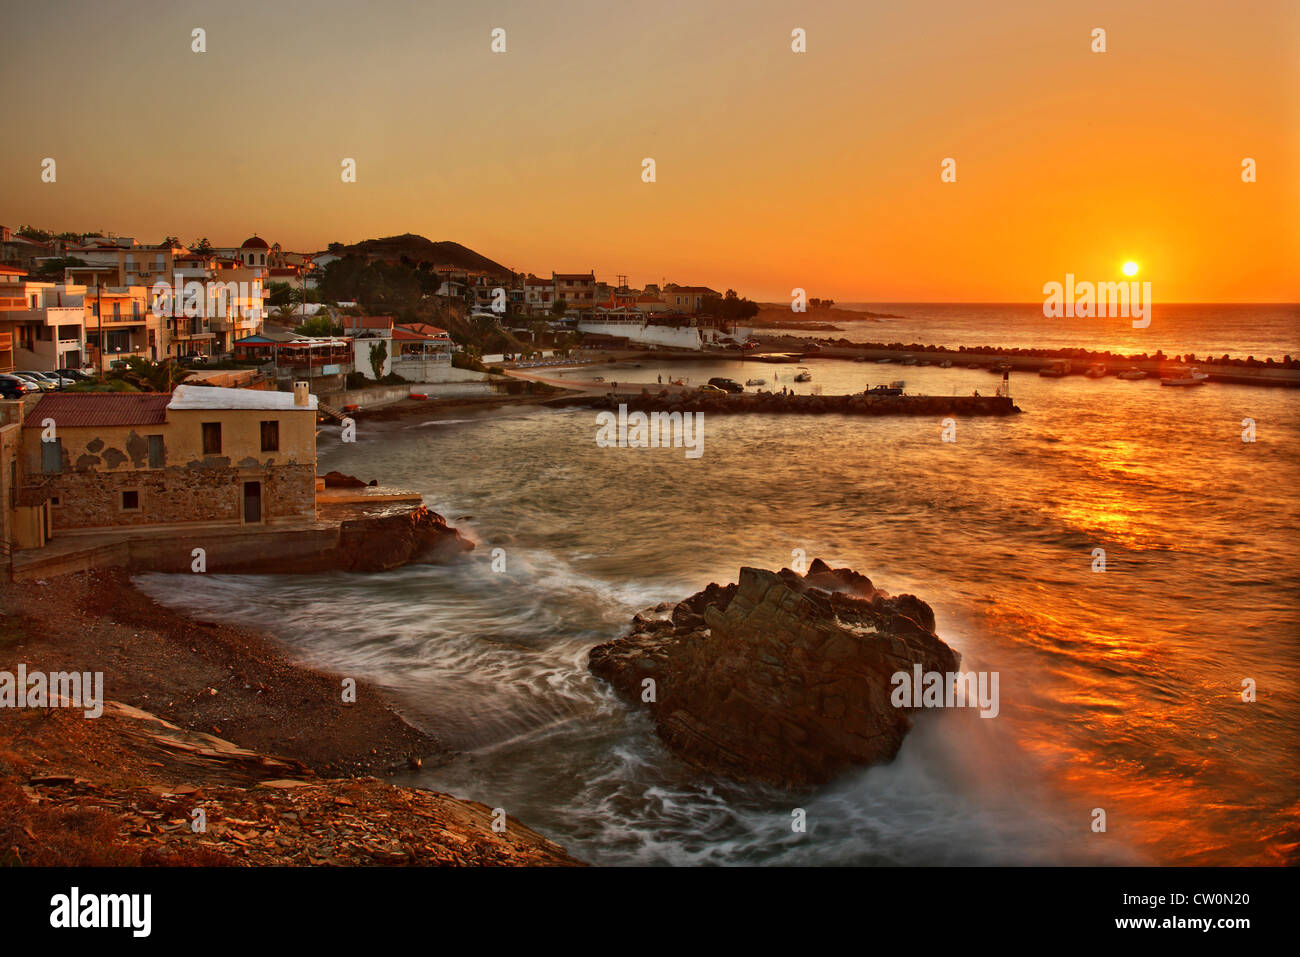 Sunset at Pamormos village, popular touristic resort, at Rethymnon prefecture, Crete, Greece - Stock Image